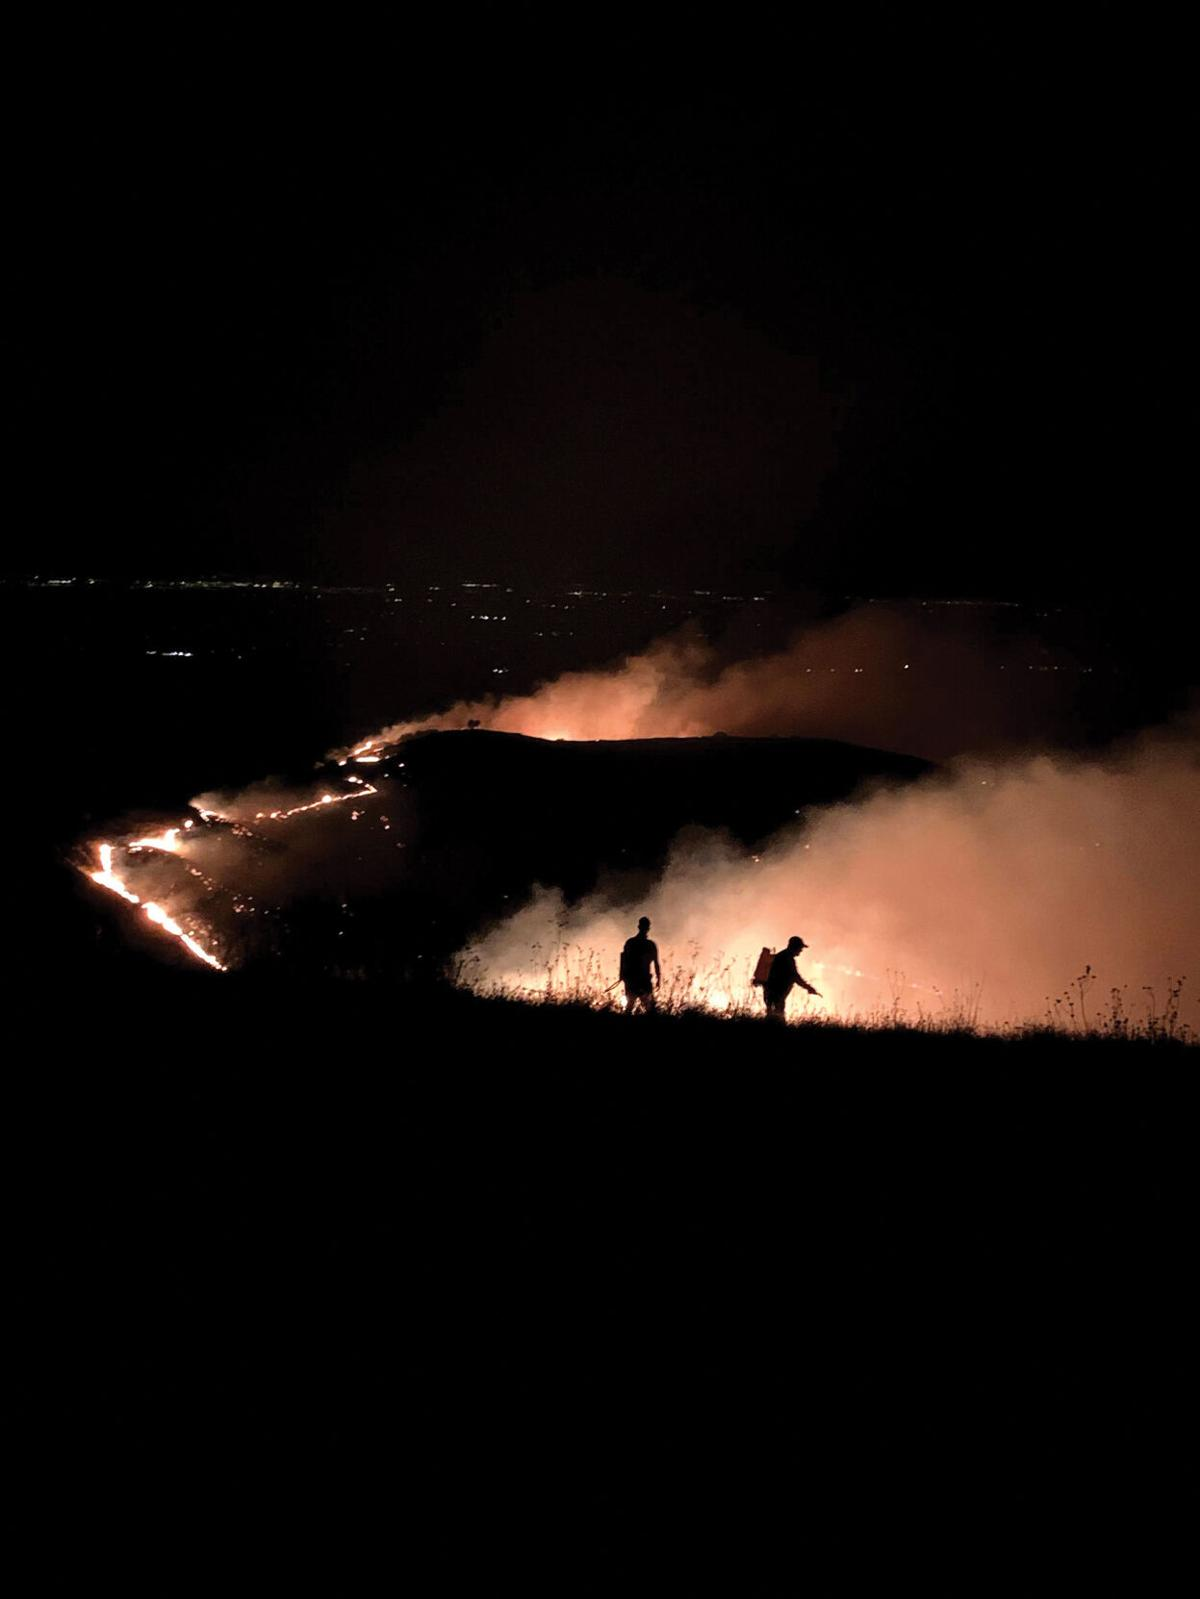 Ranch threatened by fire